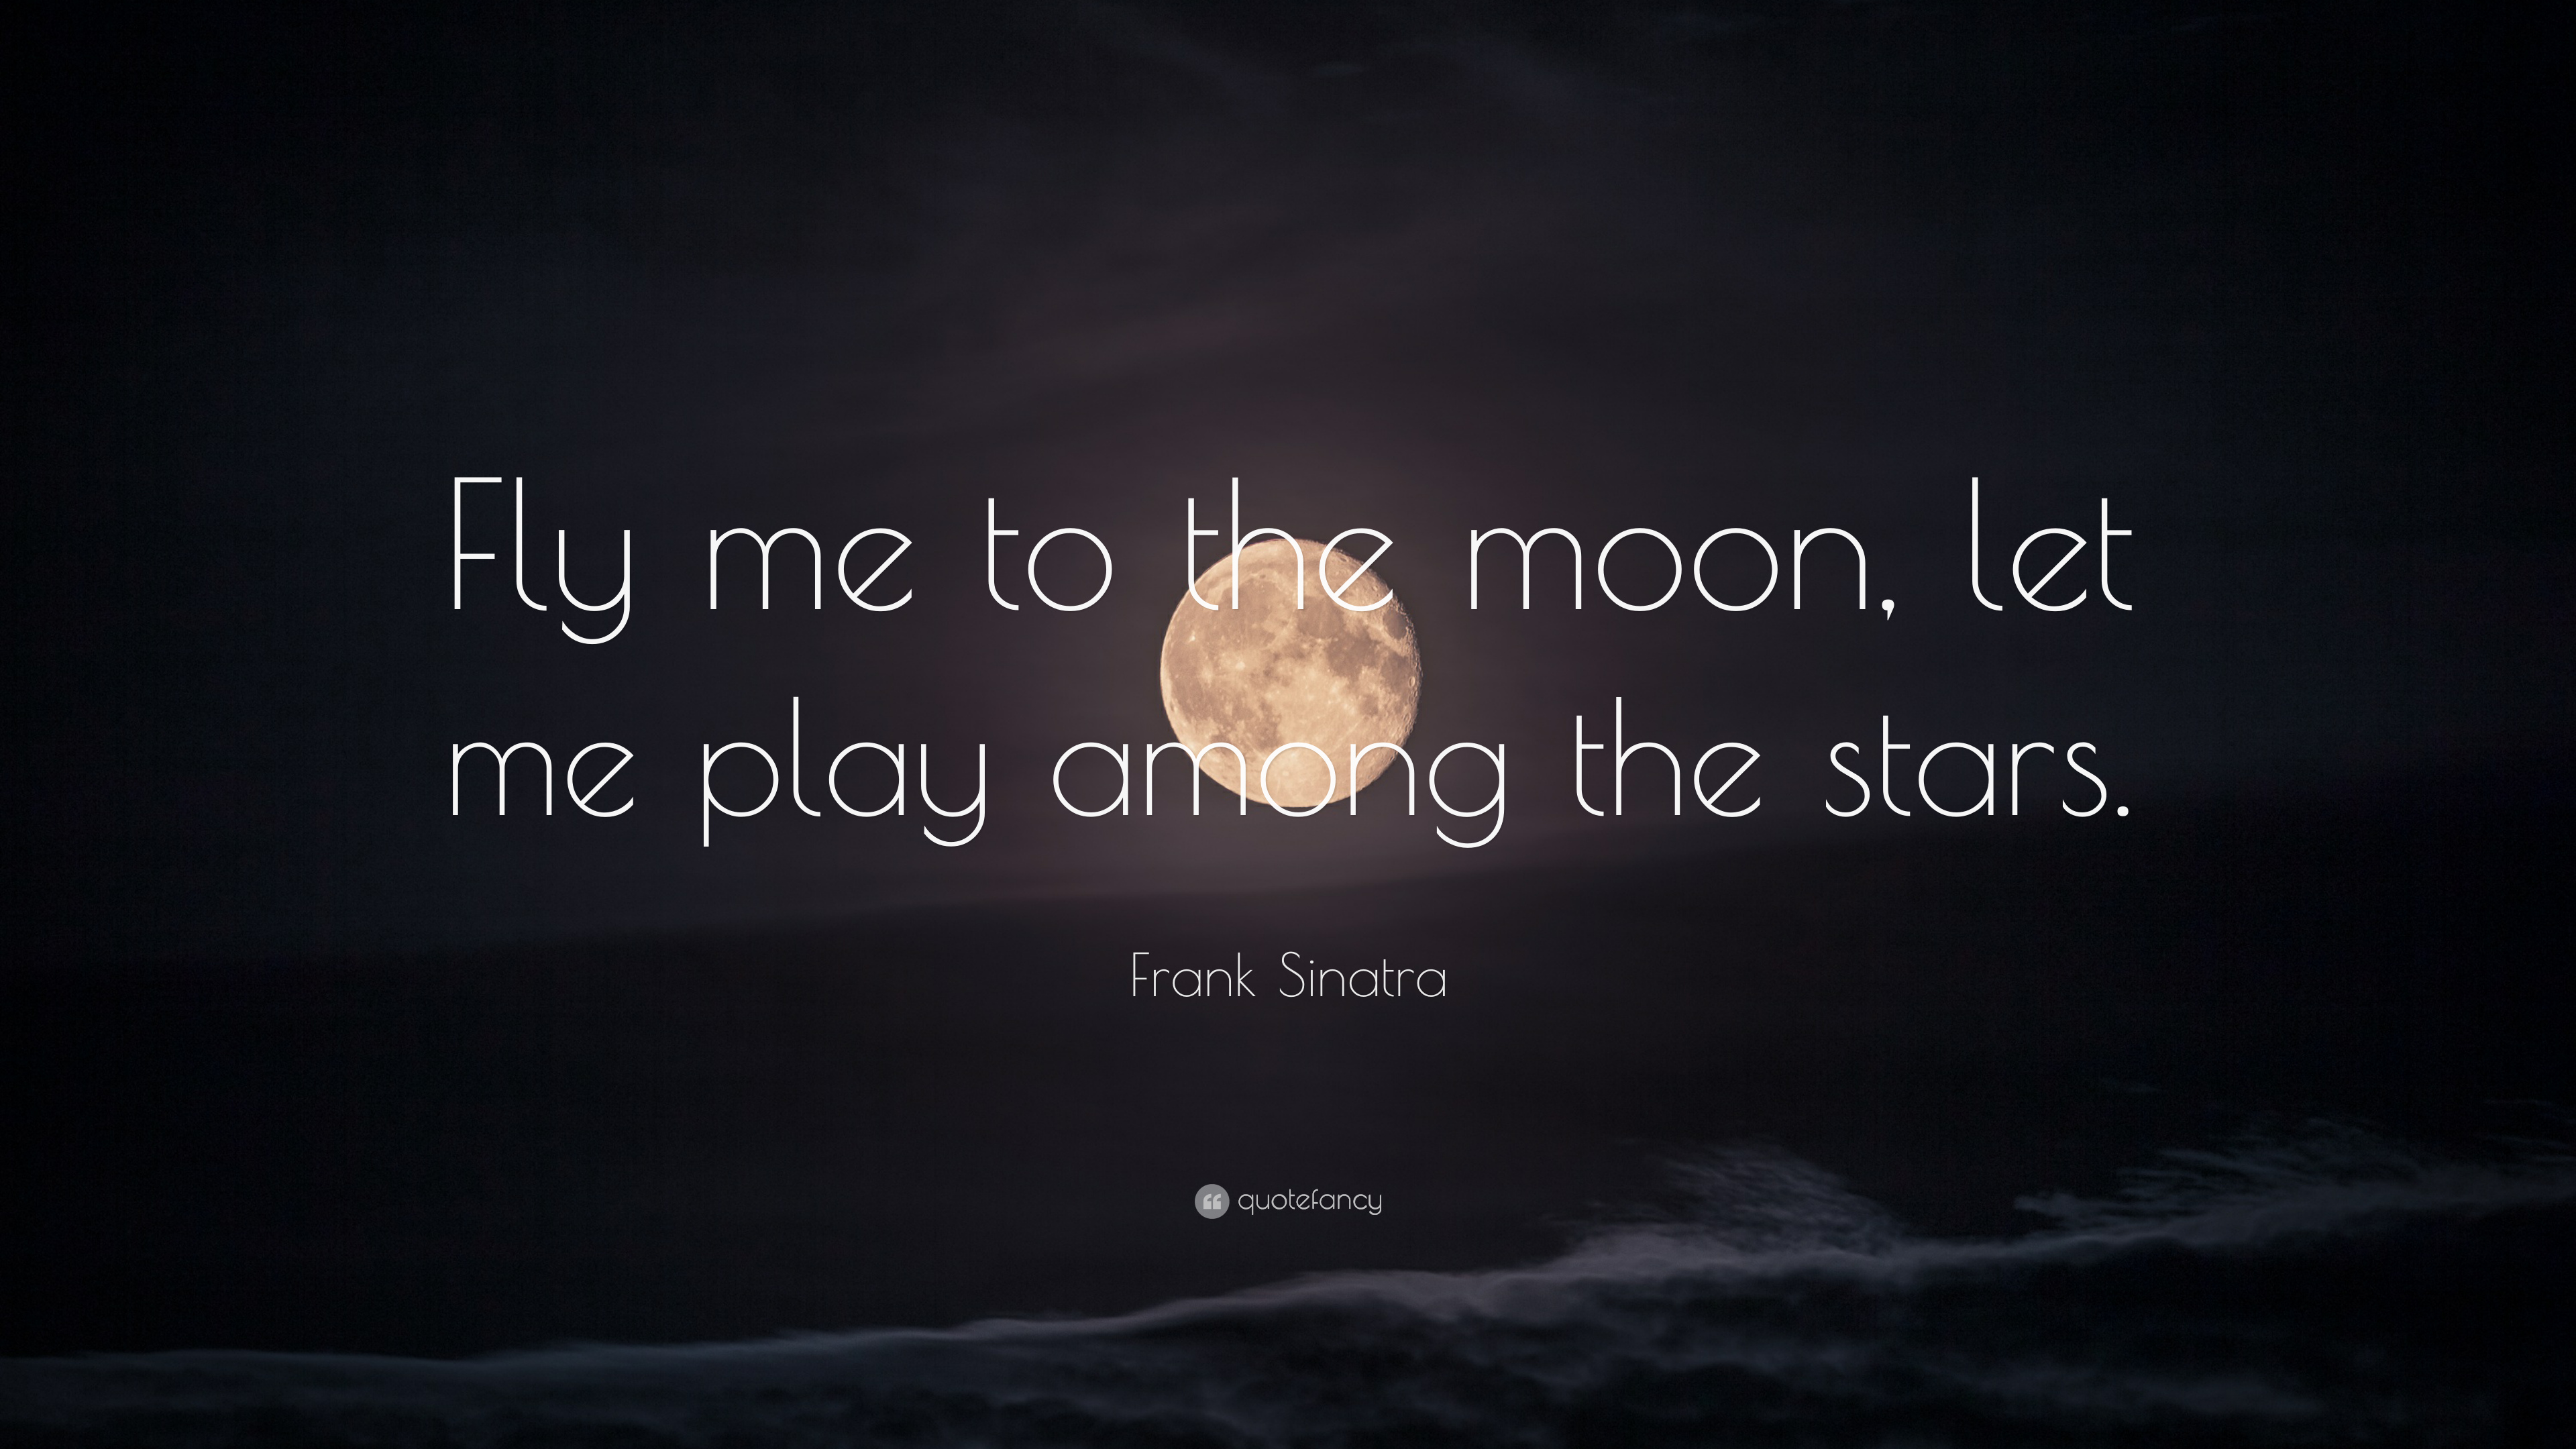 Reading Quotes Wallpaper Frank Sinatra Quote Fly Me To The Moon Let Me Play